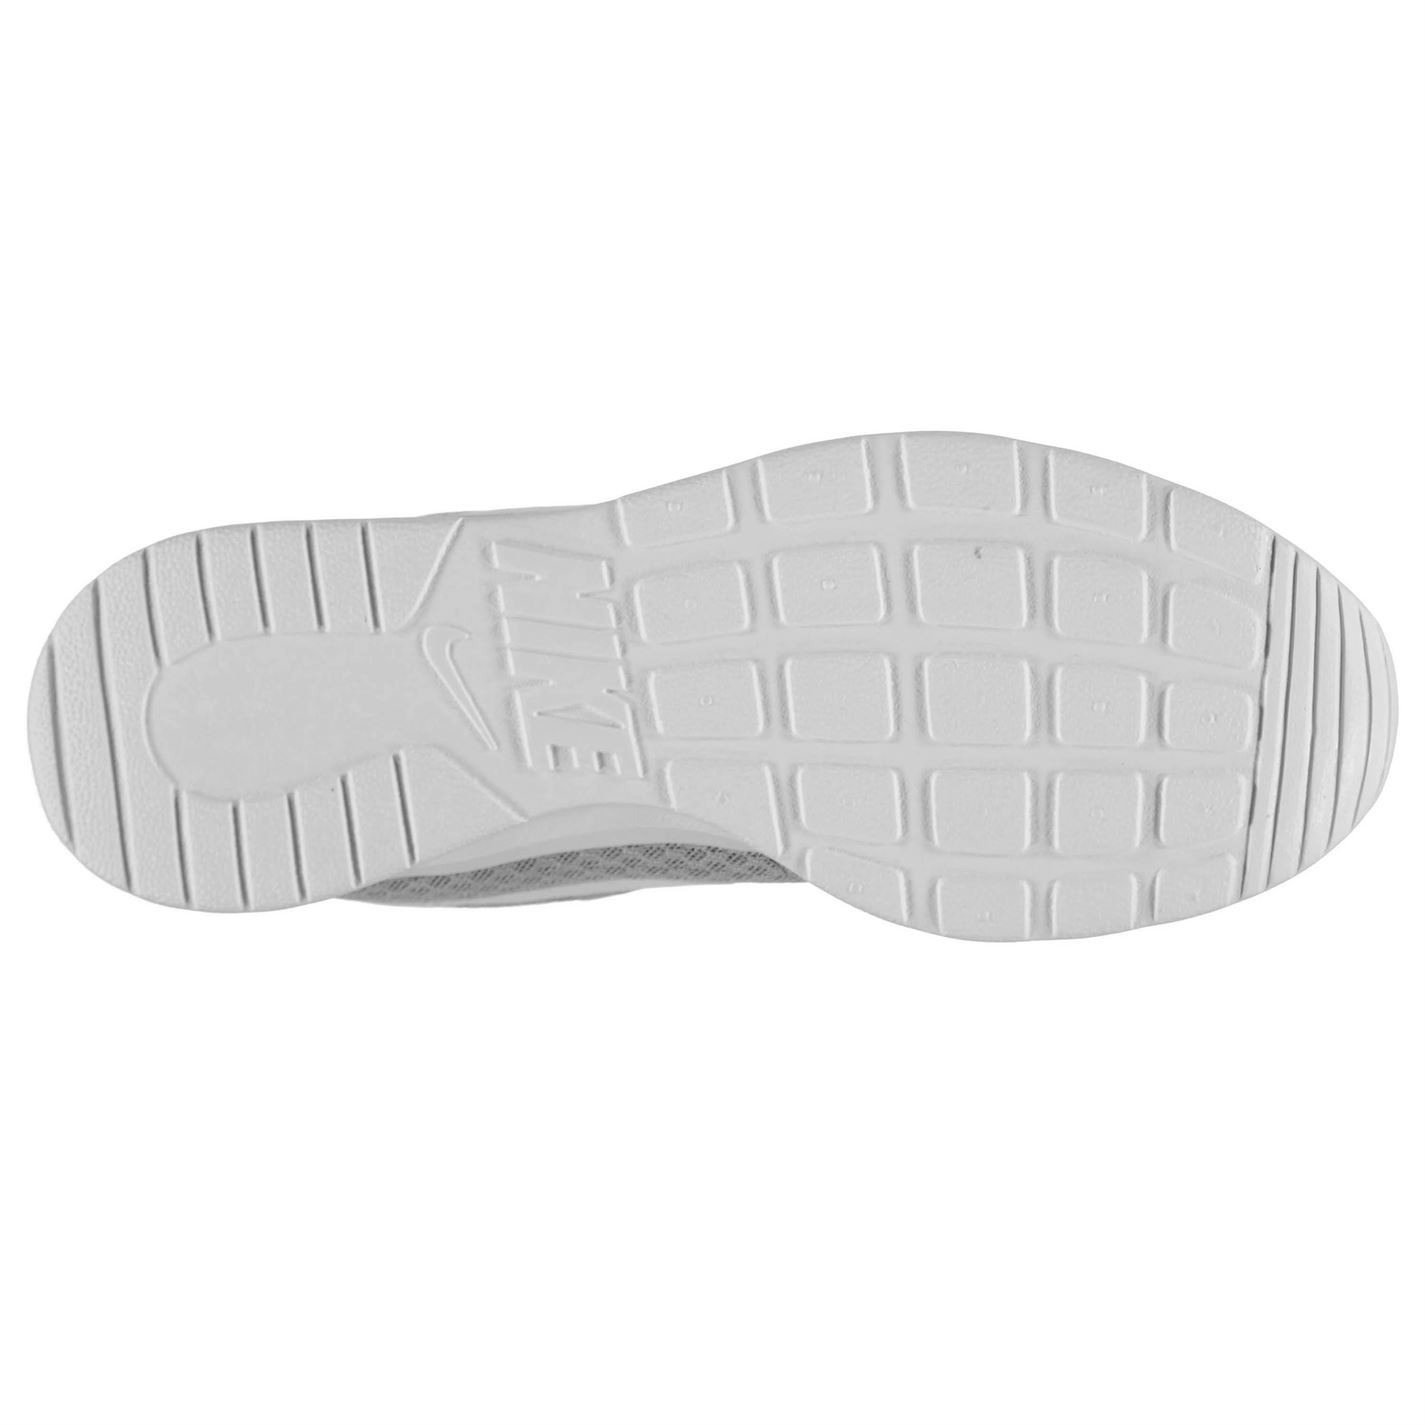 online store 0fb8a f3a29 ... Nike Tanjun Training Shoes Mens Grey White Sports Fitness Trainers  Sneakers ...